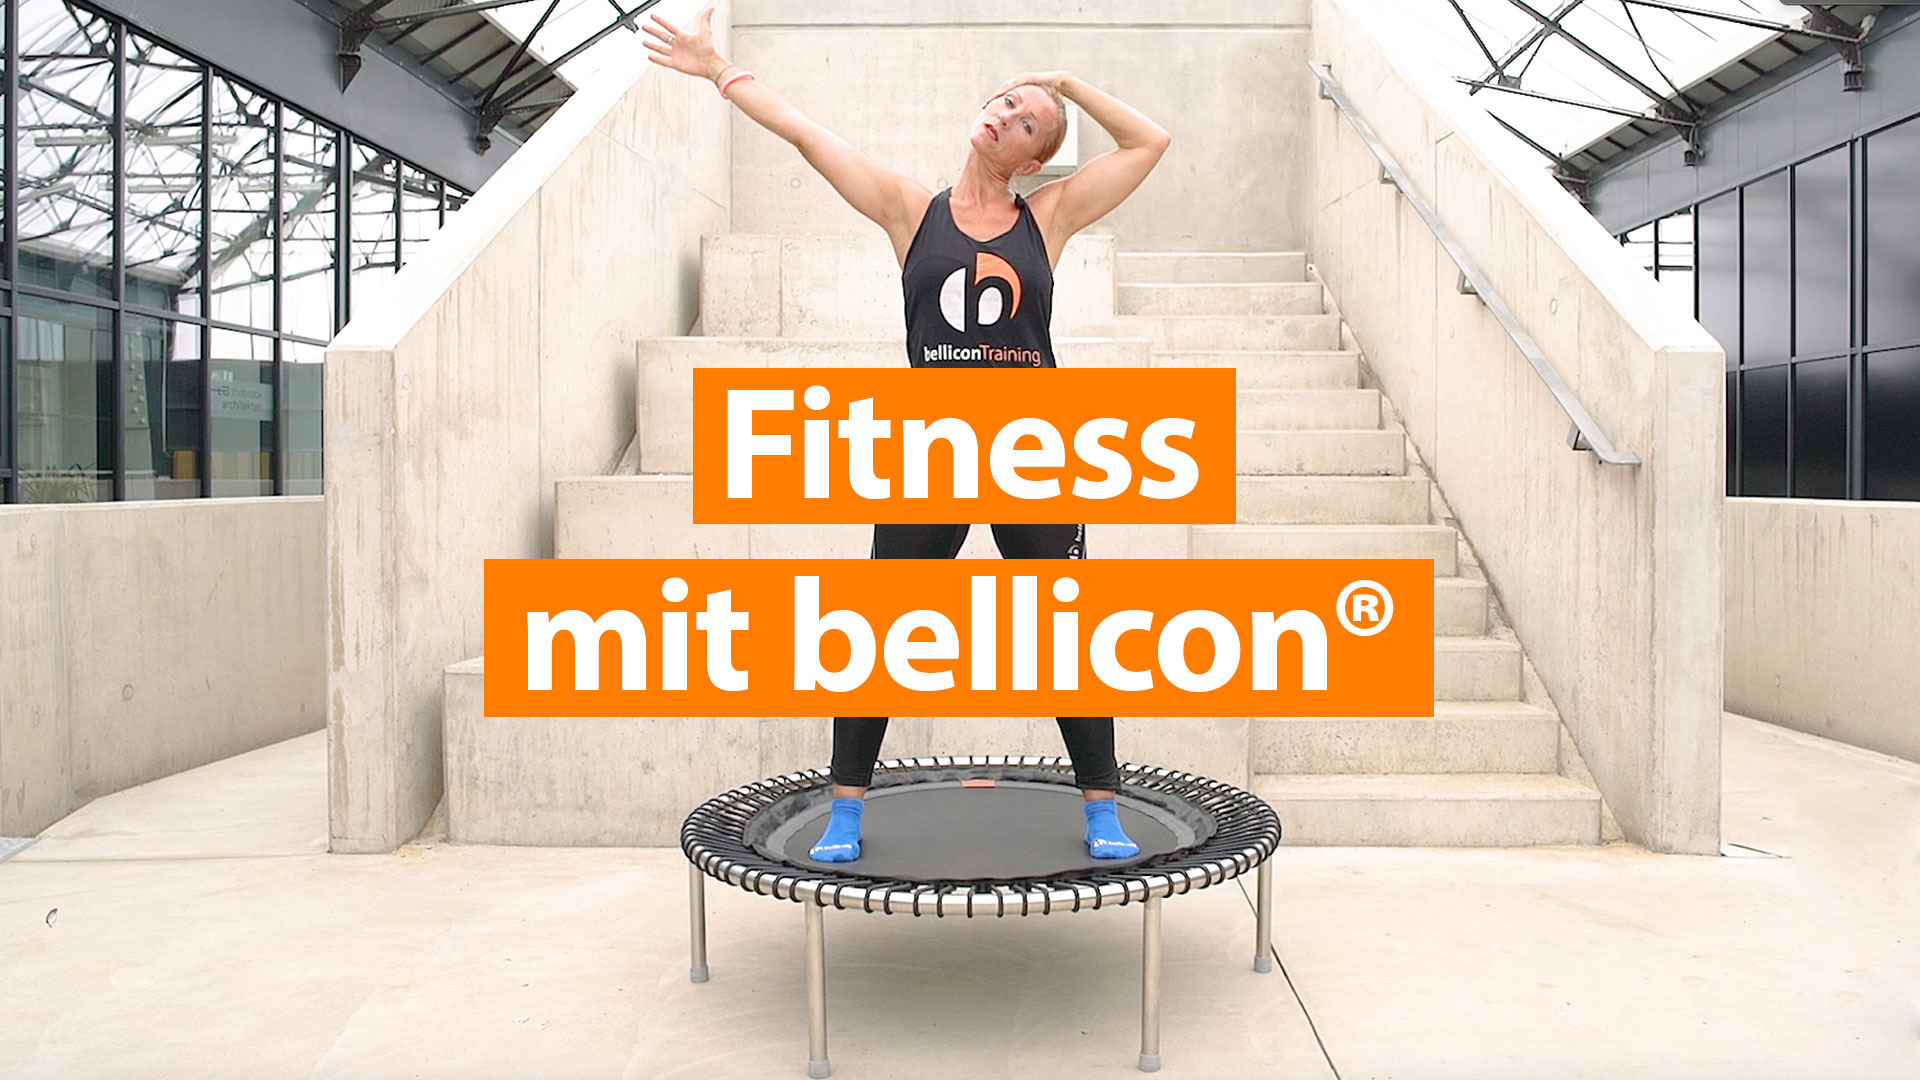 Fitness mit bellicon®